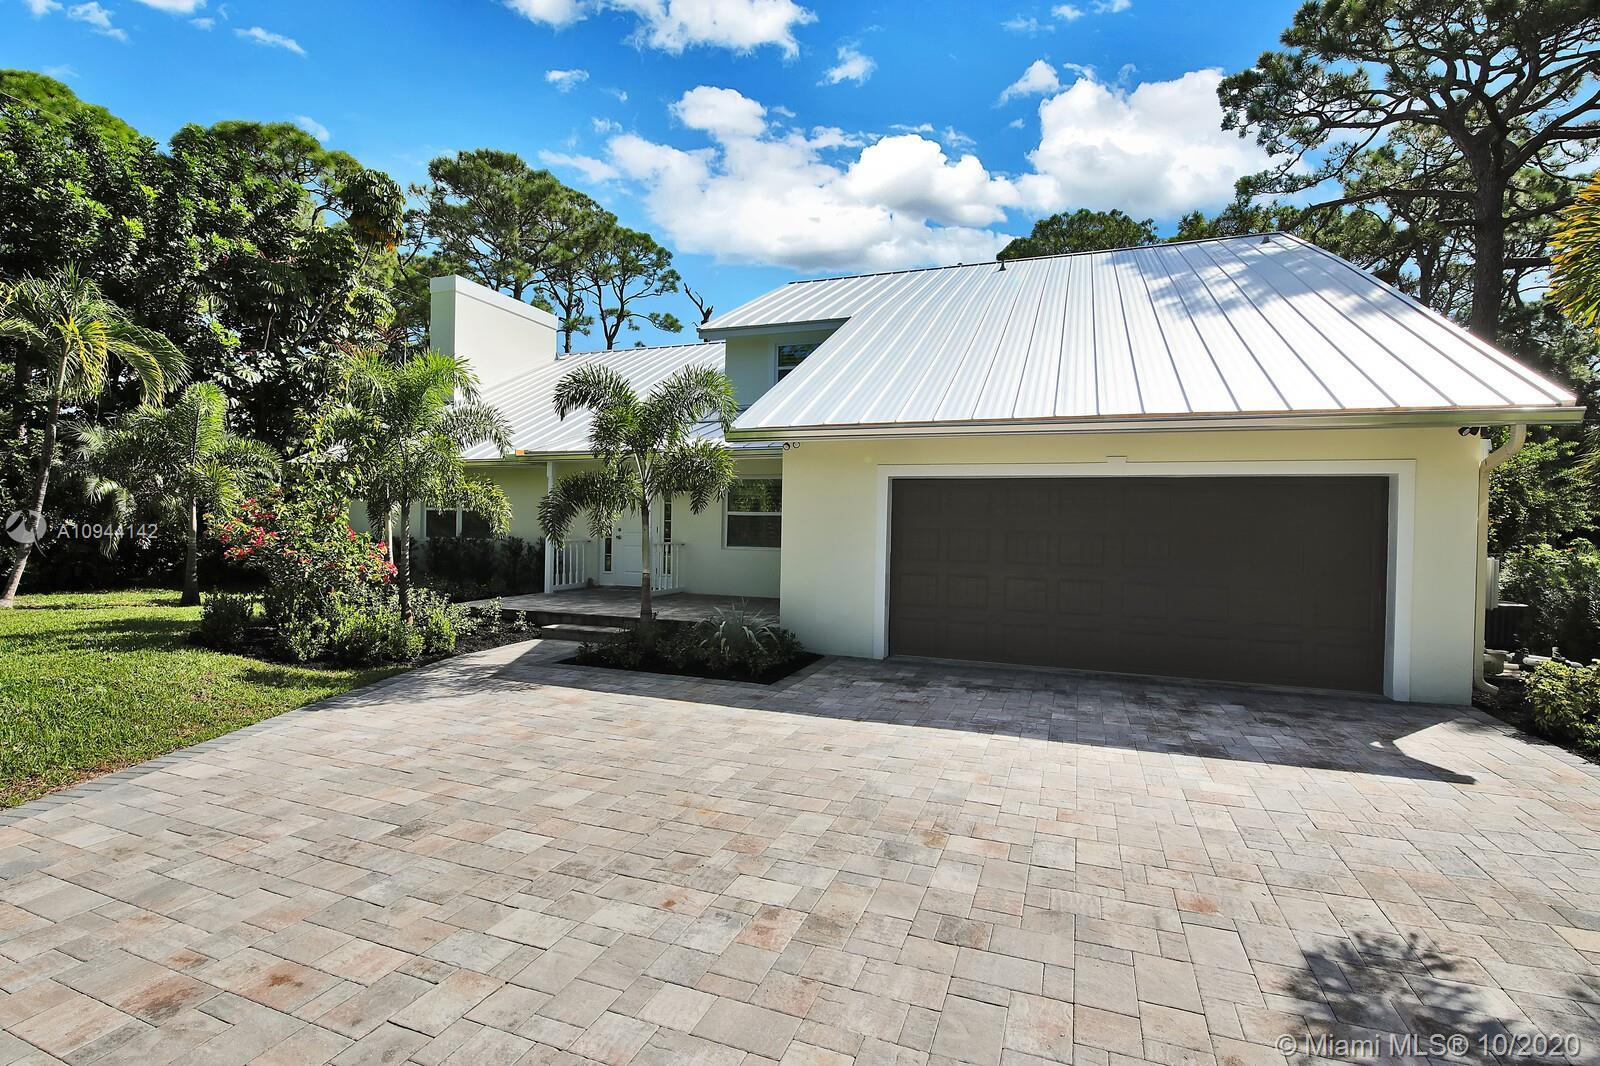 This large STUNNING ONE-OF-A-KIND ultra-private, completely remodeled, custom pool home is located i